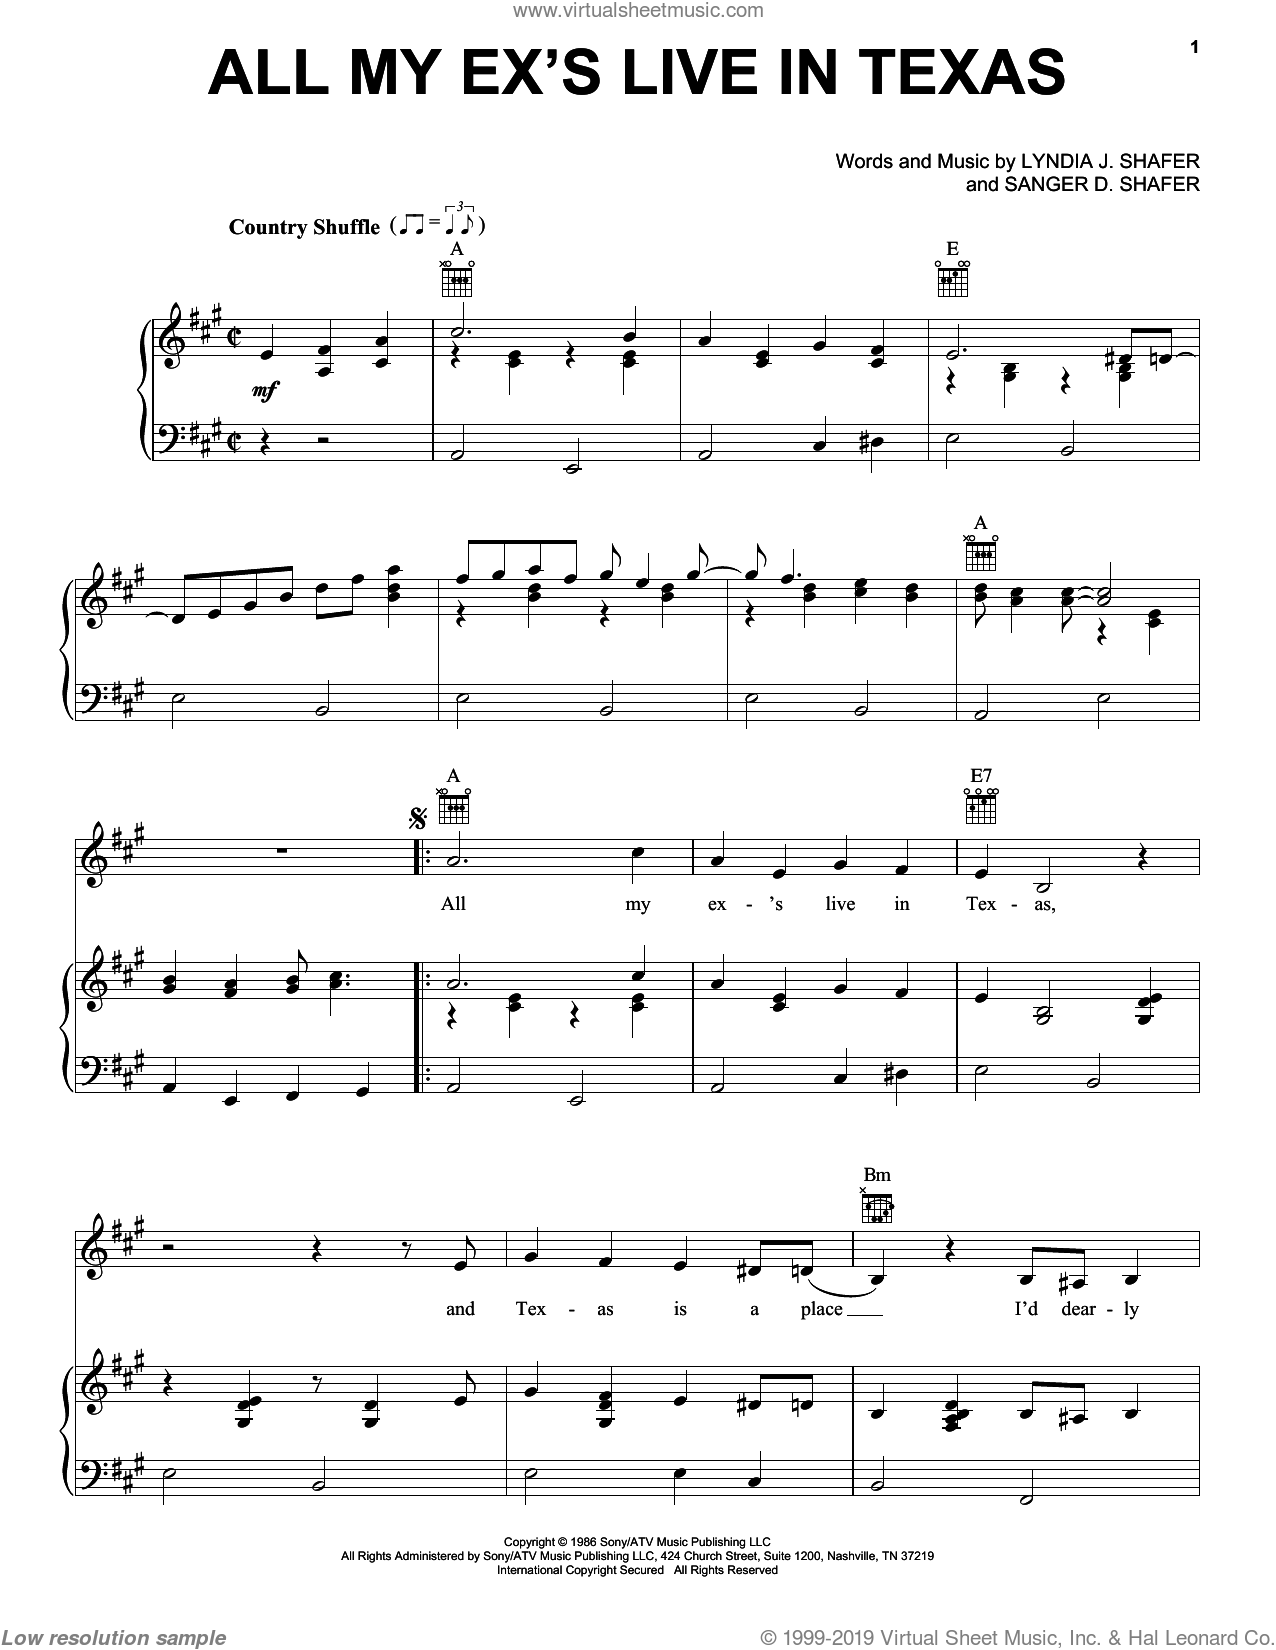 All My Ex's Live In Texas sheet music for voice, piano or guitar by Sanger D. Shafer and George Strait. Score Image Preview.